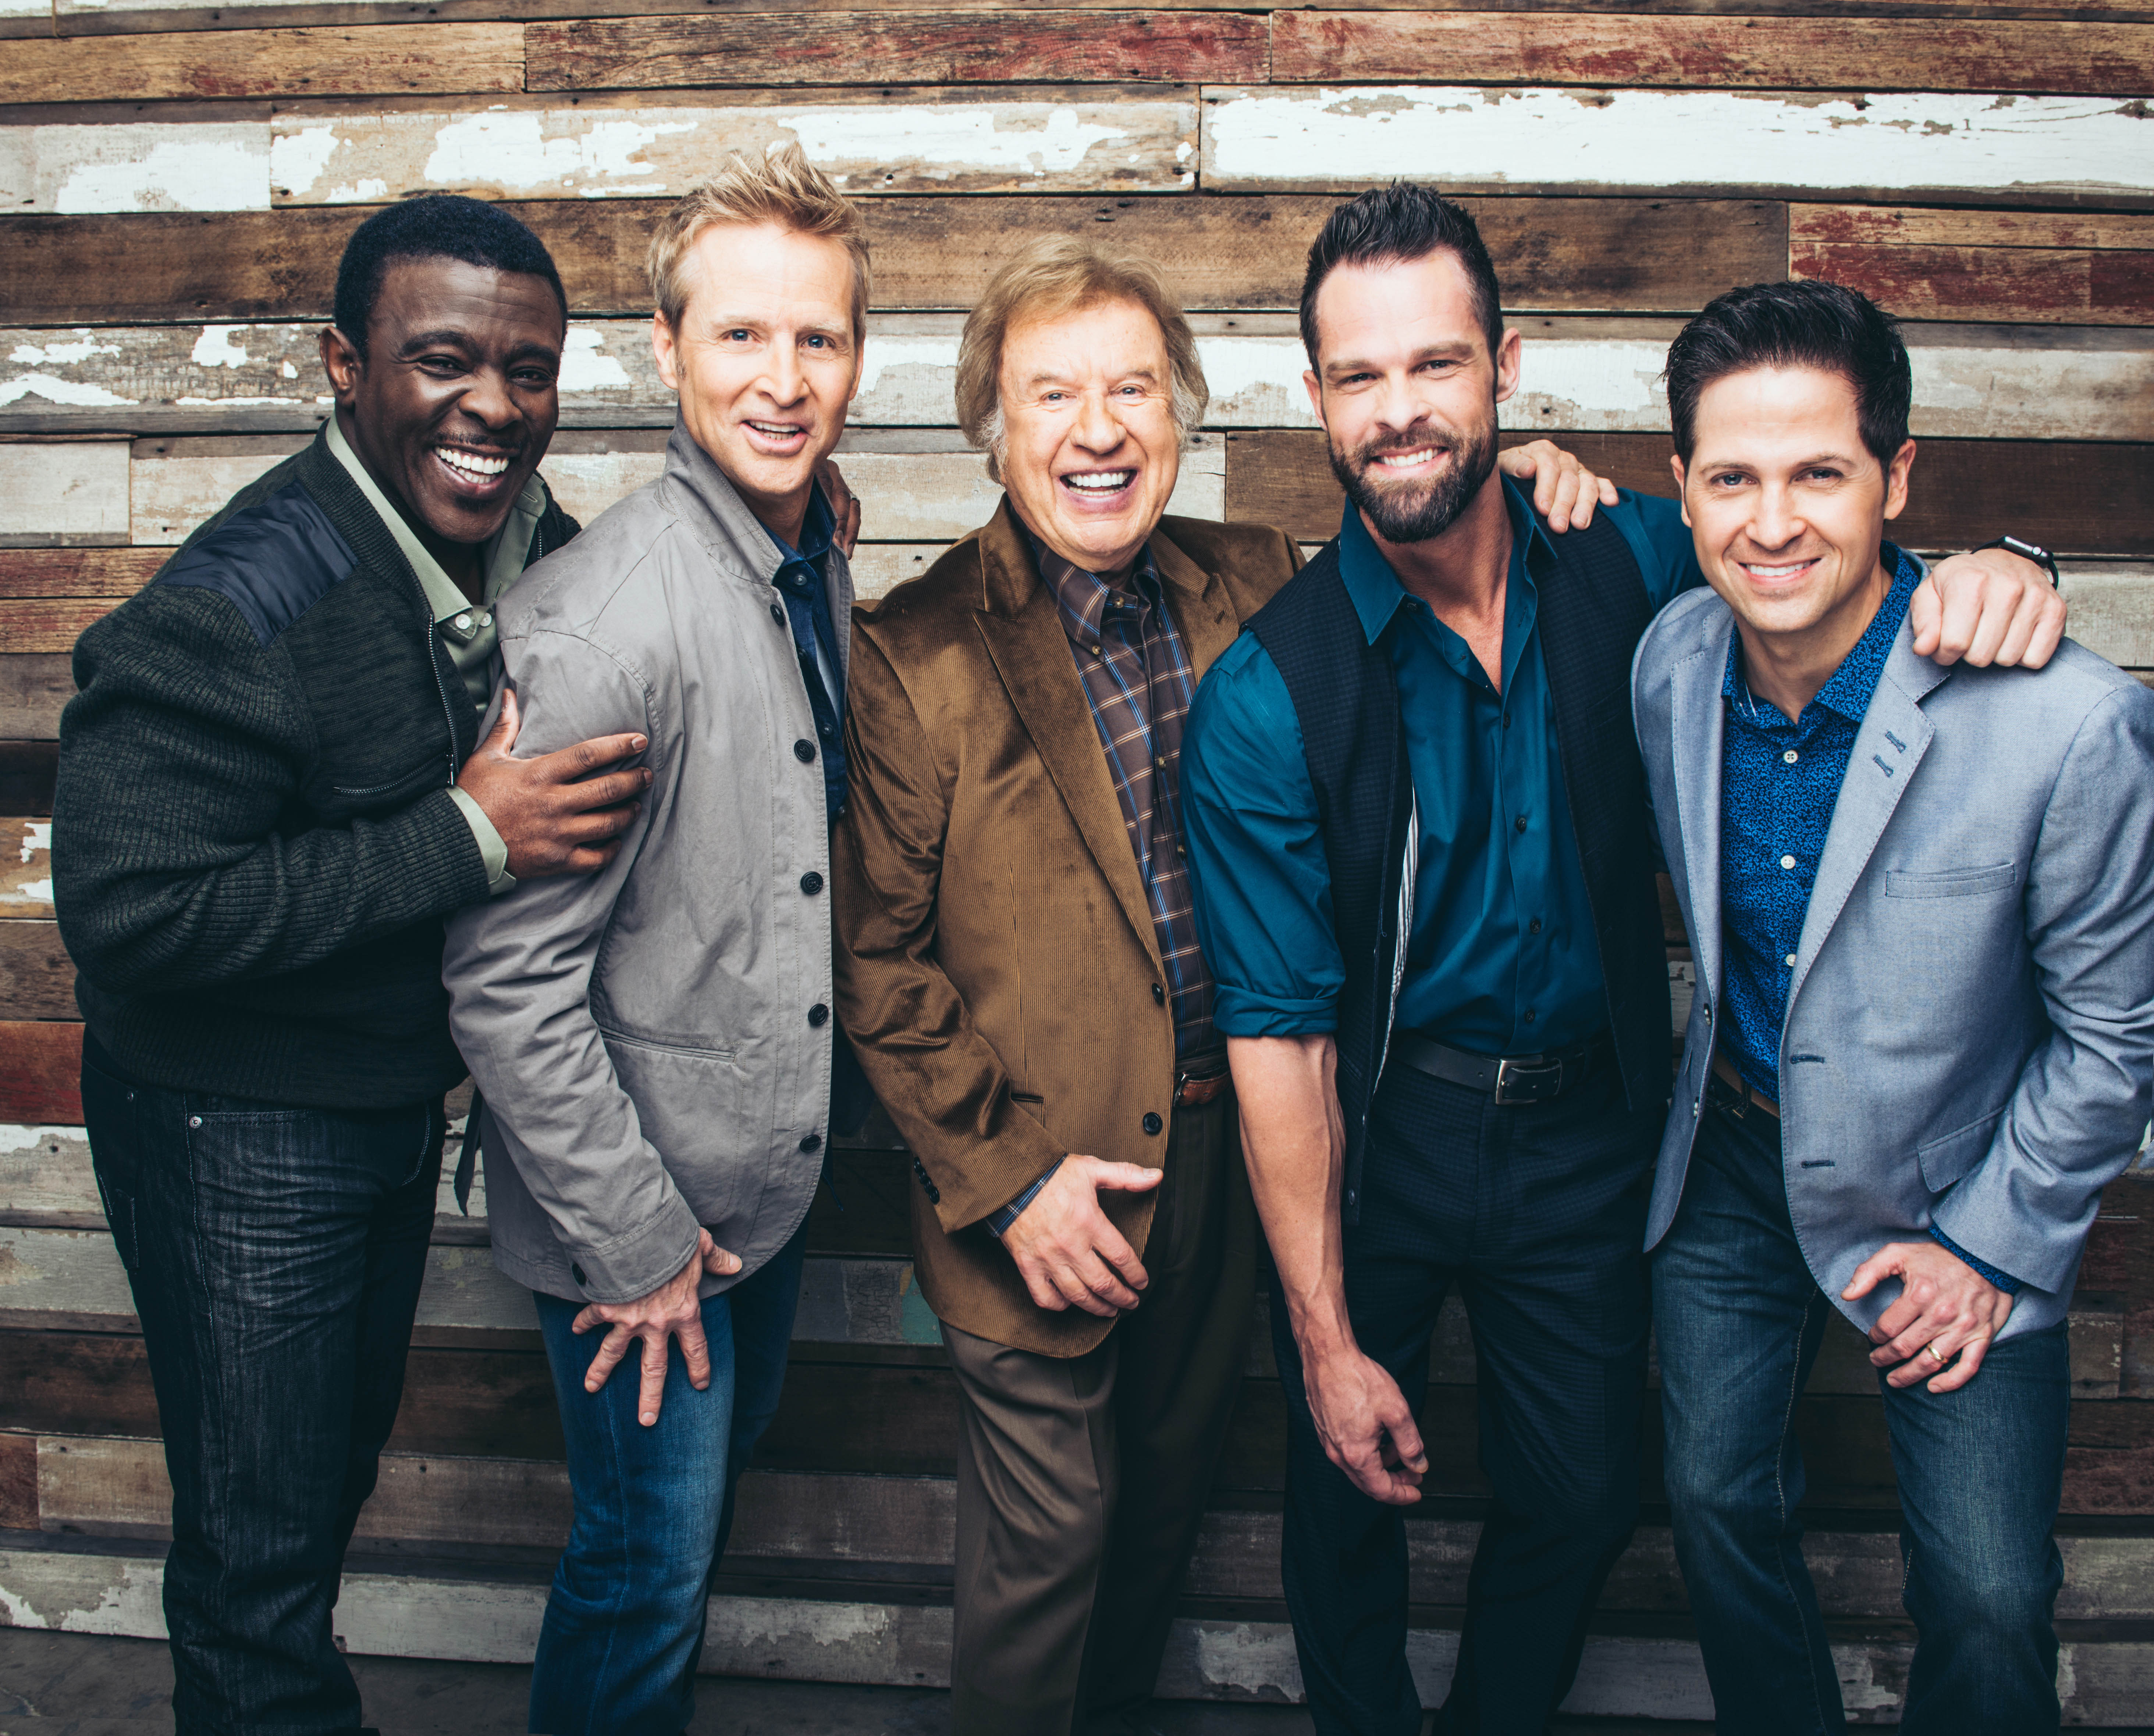 Bill Gaither & Gaither Vocal Band - Sunday, April 9, 2017 ...